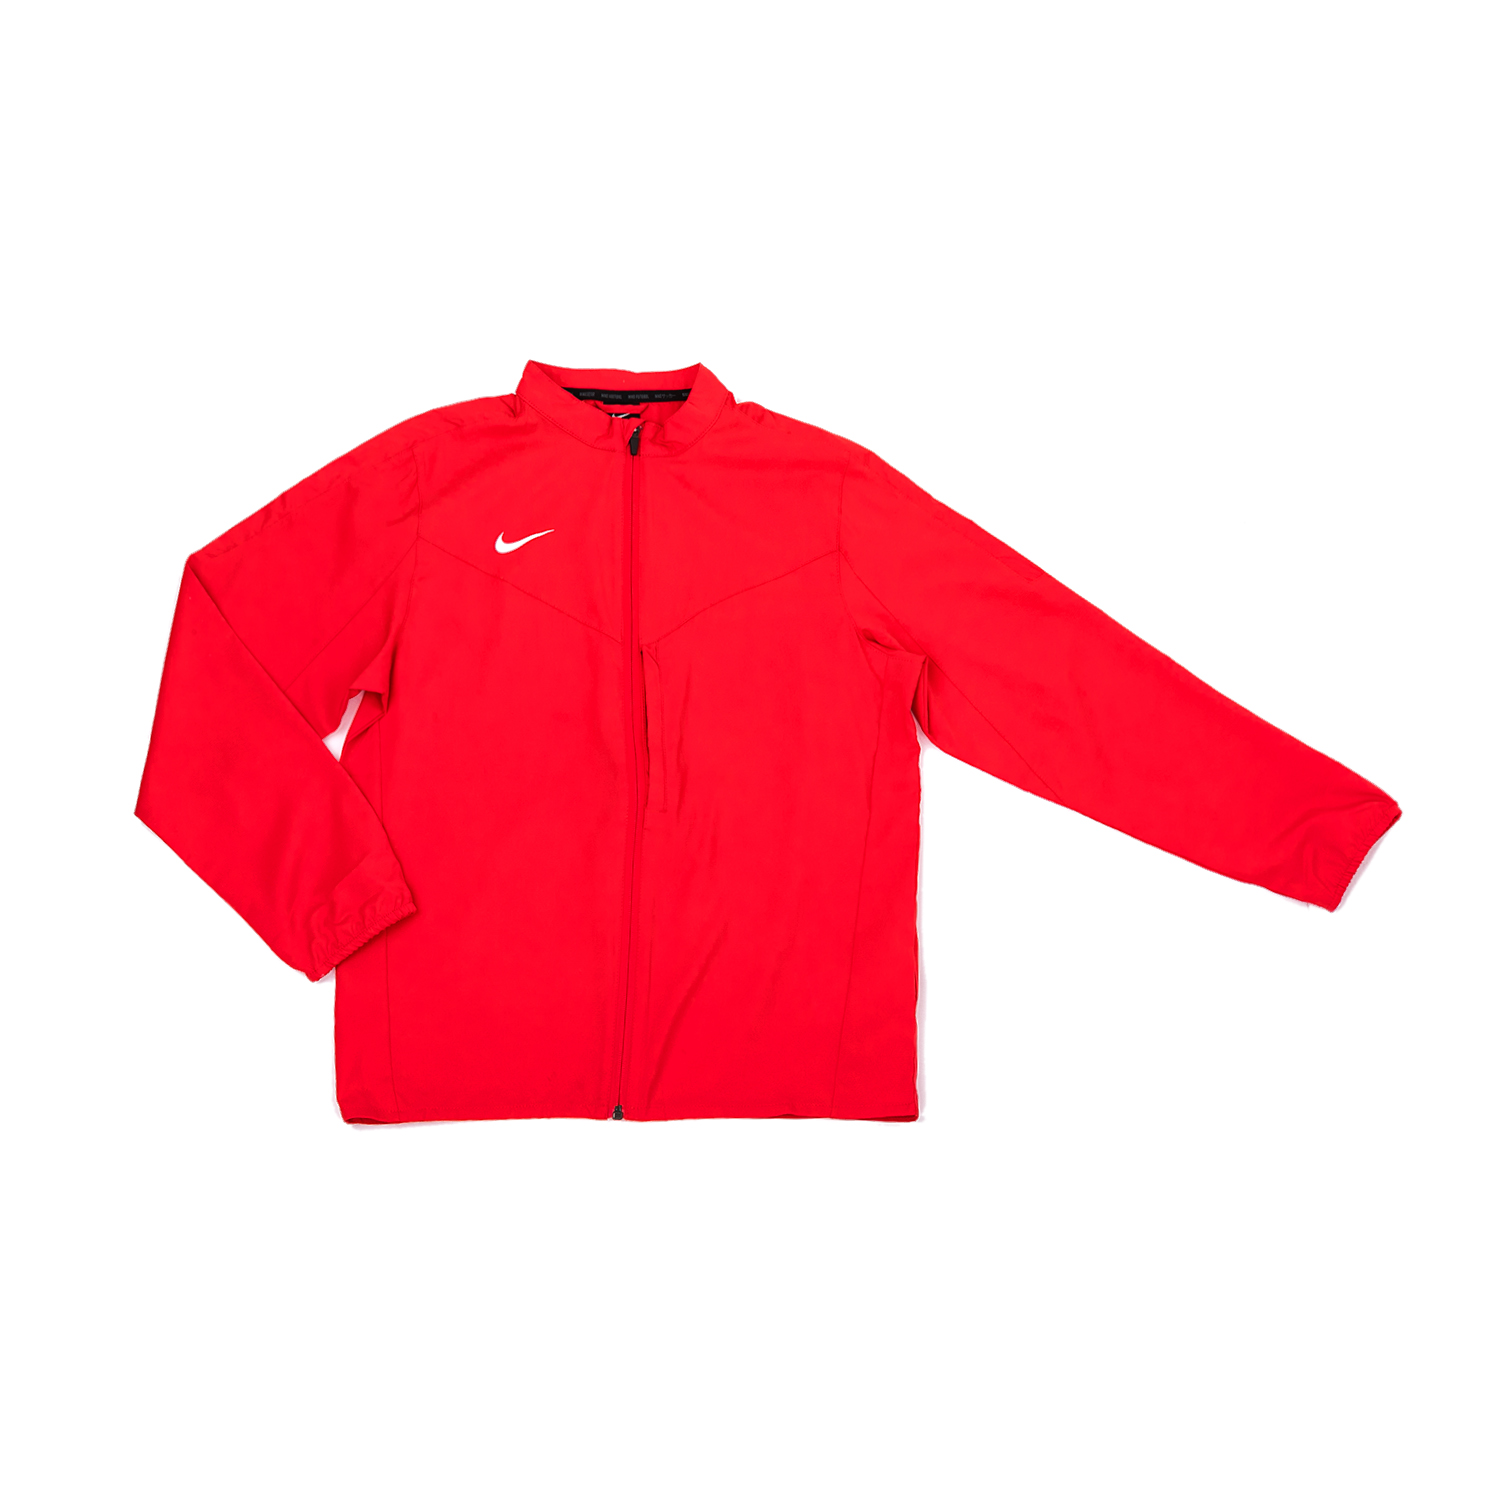 NIKE - Παιδική ζακέτα TEAM PERFORMANCE SHIELD κόκκινη new year starts with special offers only for today